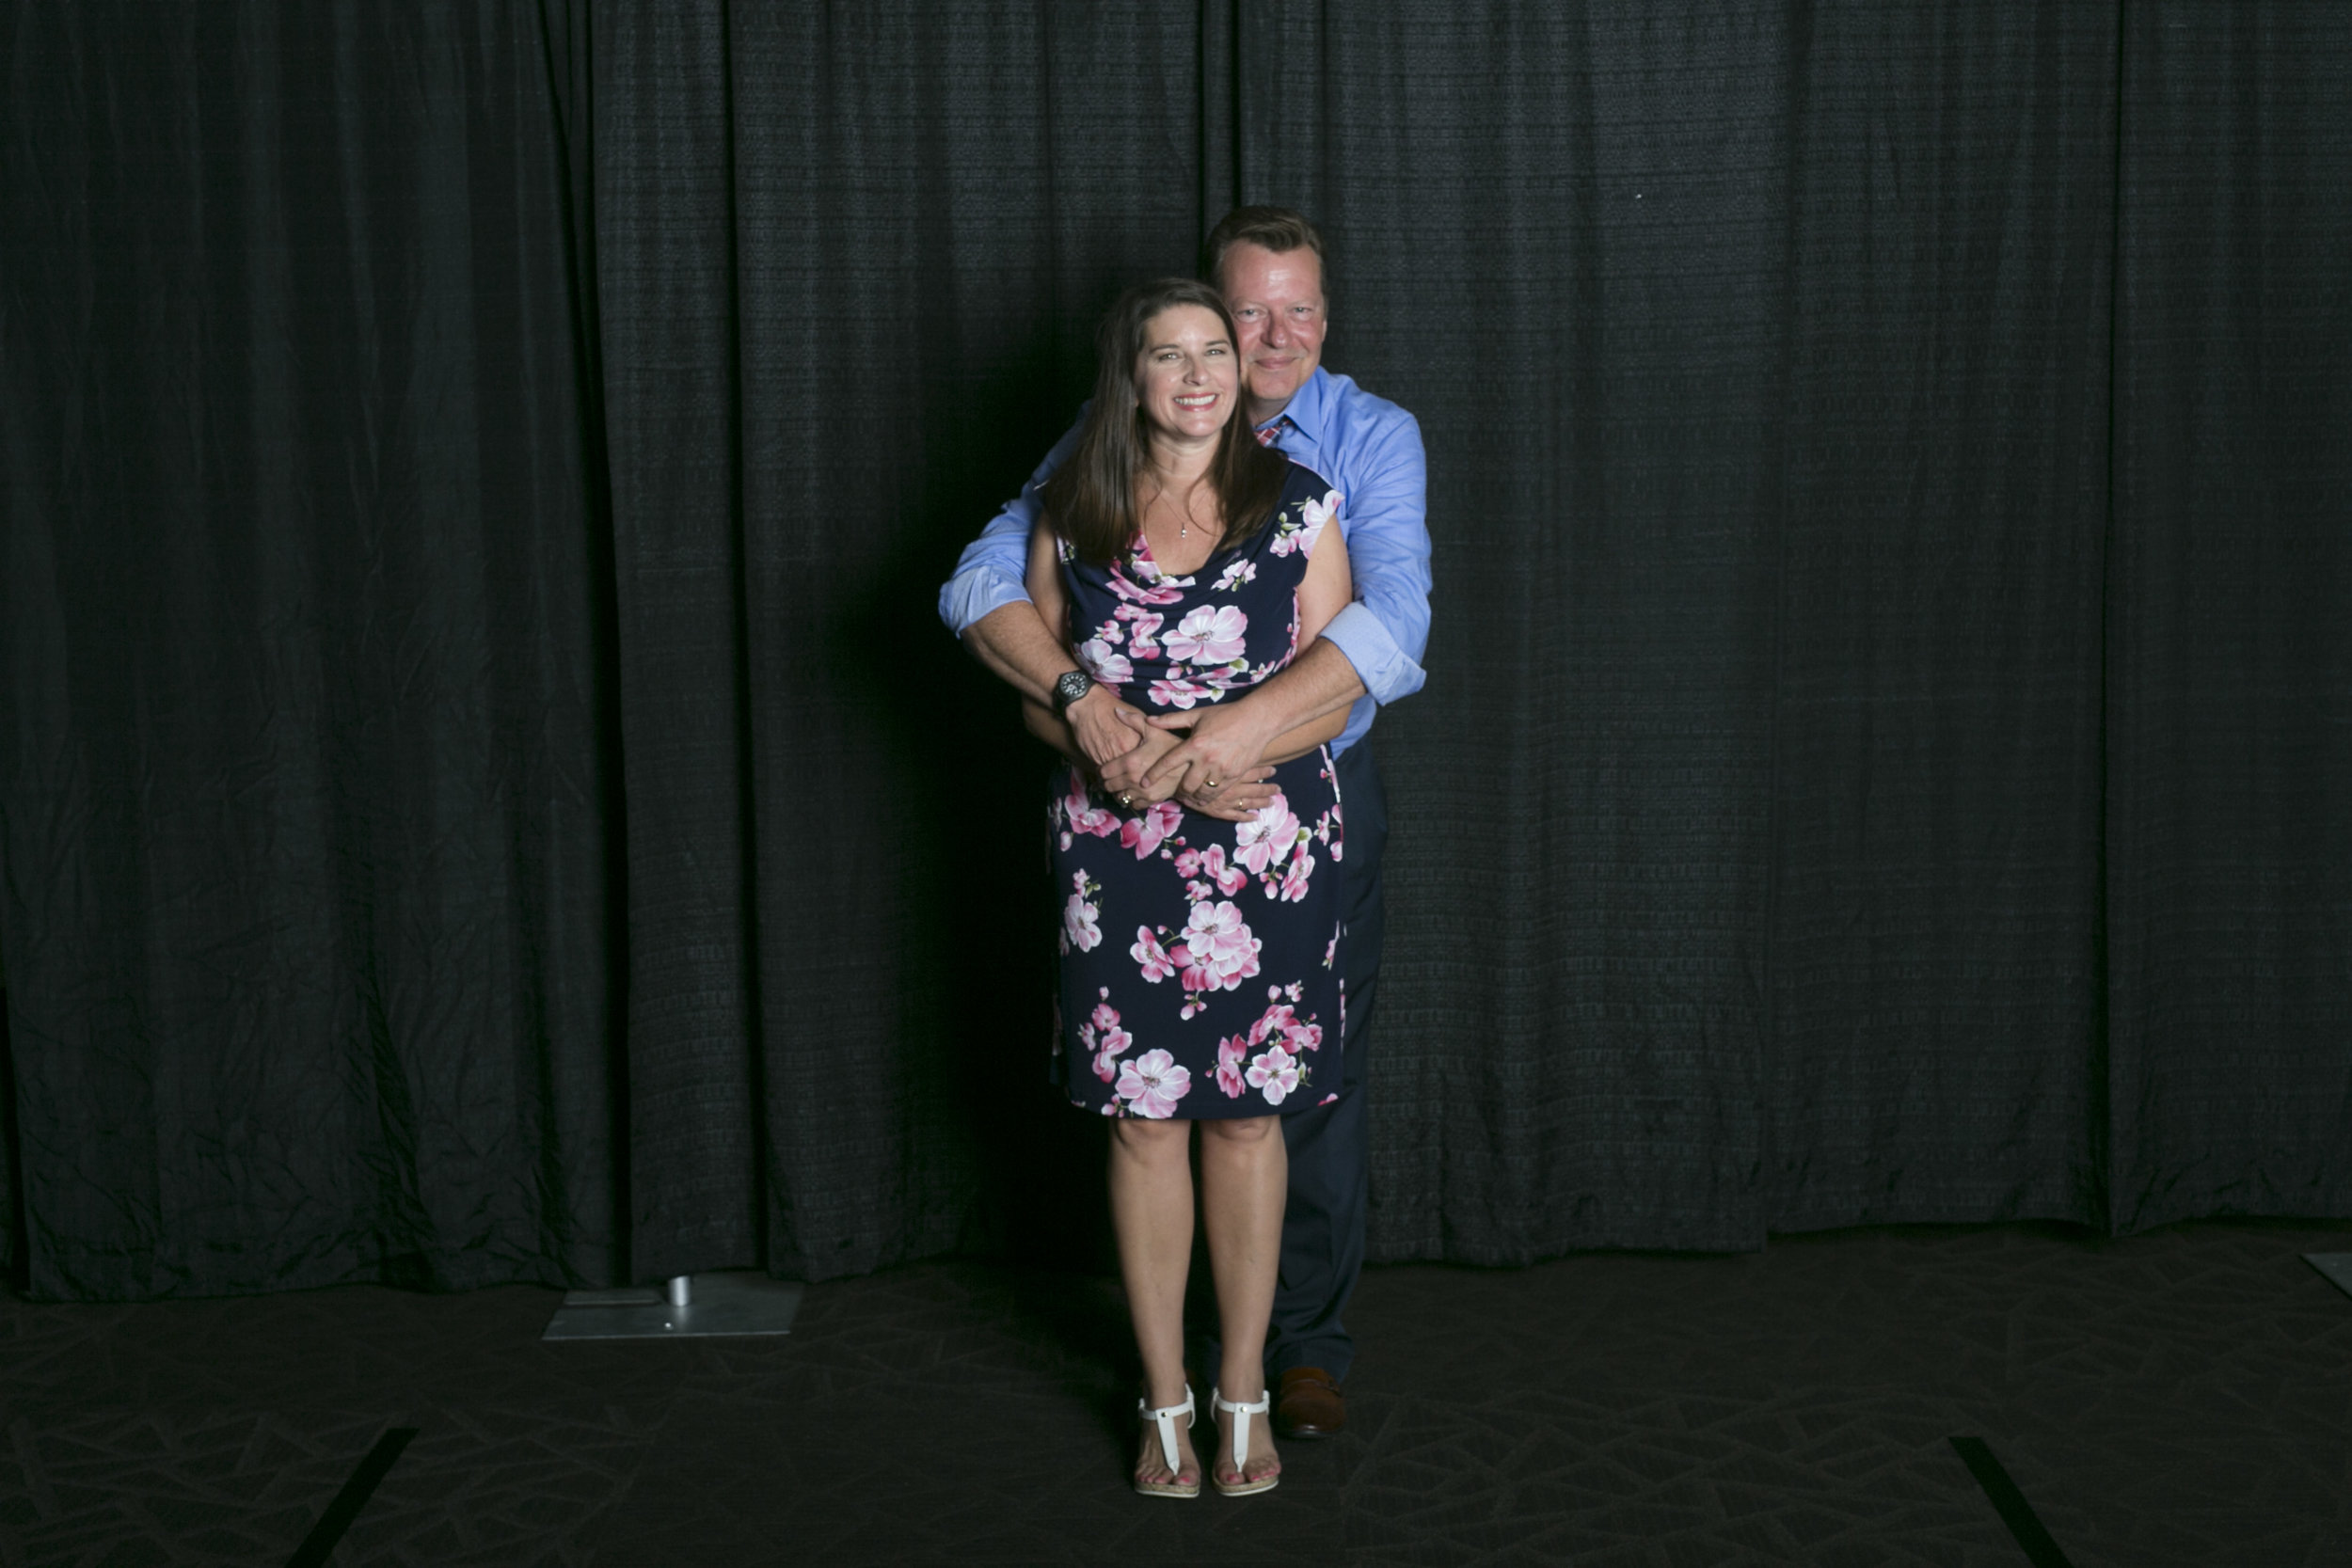 wedding photo booth-132.jpg